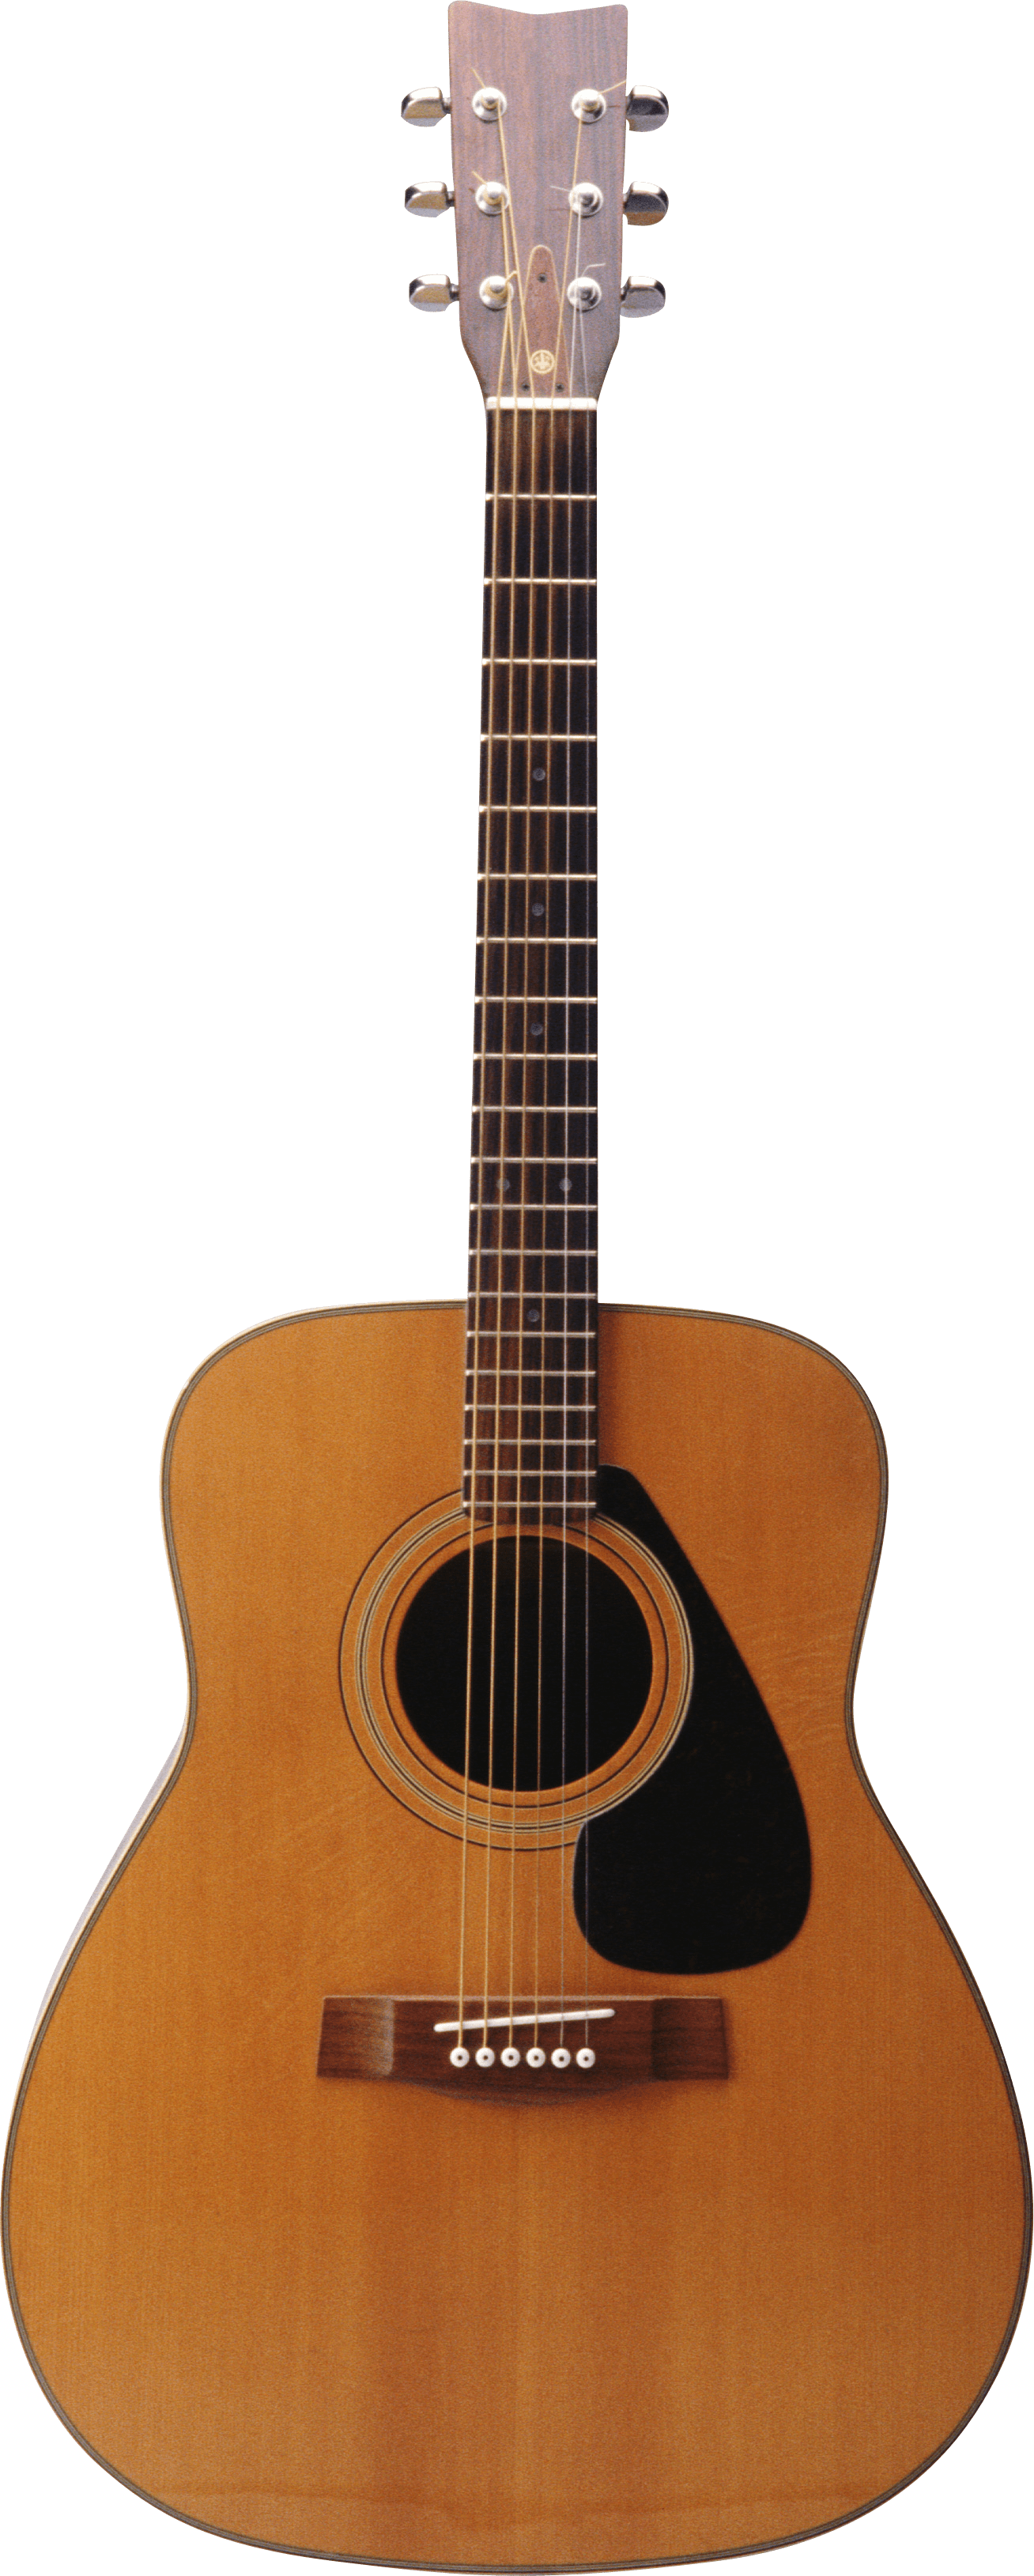 Acoustic guitar Icons - Free Download, PNG and SVG